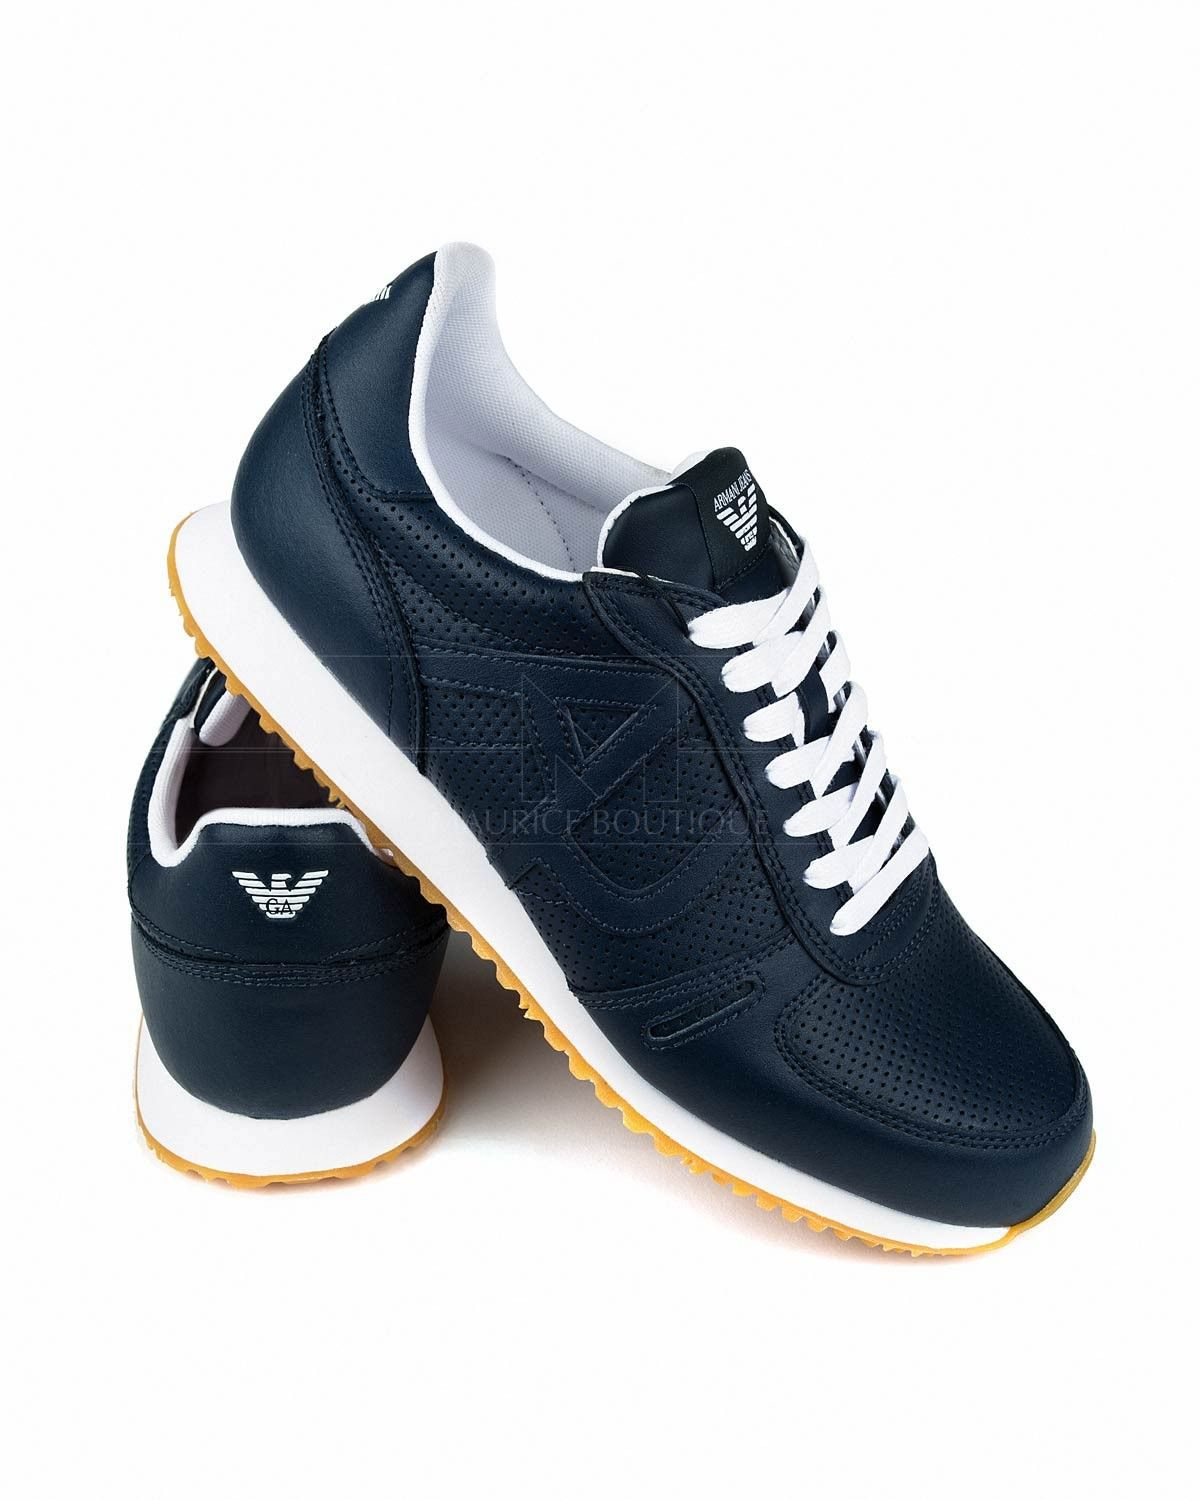 huge selection of 832a8 1748e Zapatillas Armani Jeans - Azul Marino   Zapatos-shoes   Jeans, sneakers,  Armani shoes mens, Shoe boots